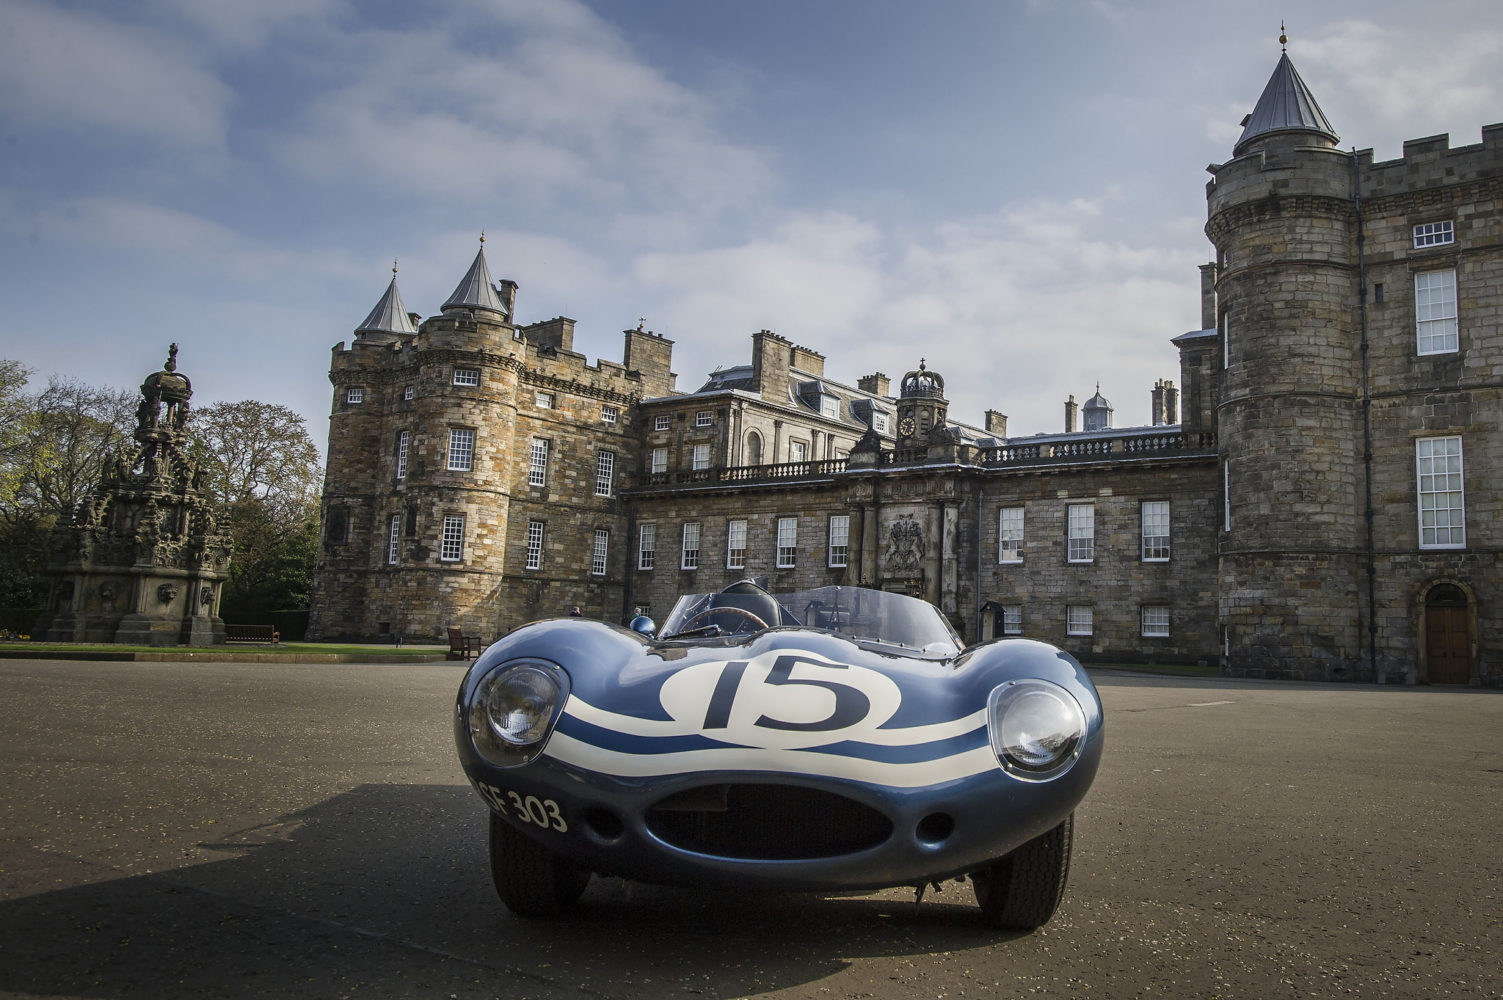 CONCOURS OF ELEGANCE CELEBRATES ECURIE ECOSSE RACING TEAM WITH WORLD-FIRST FEATURE AT 2015 EVENT